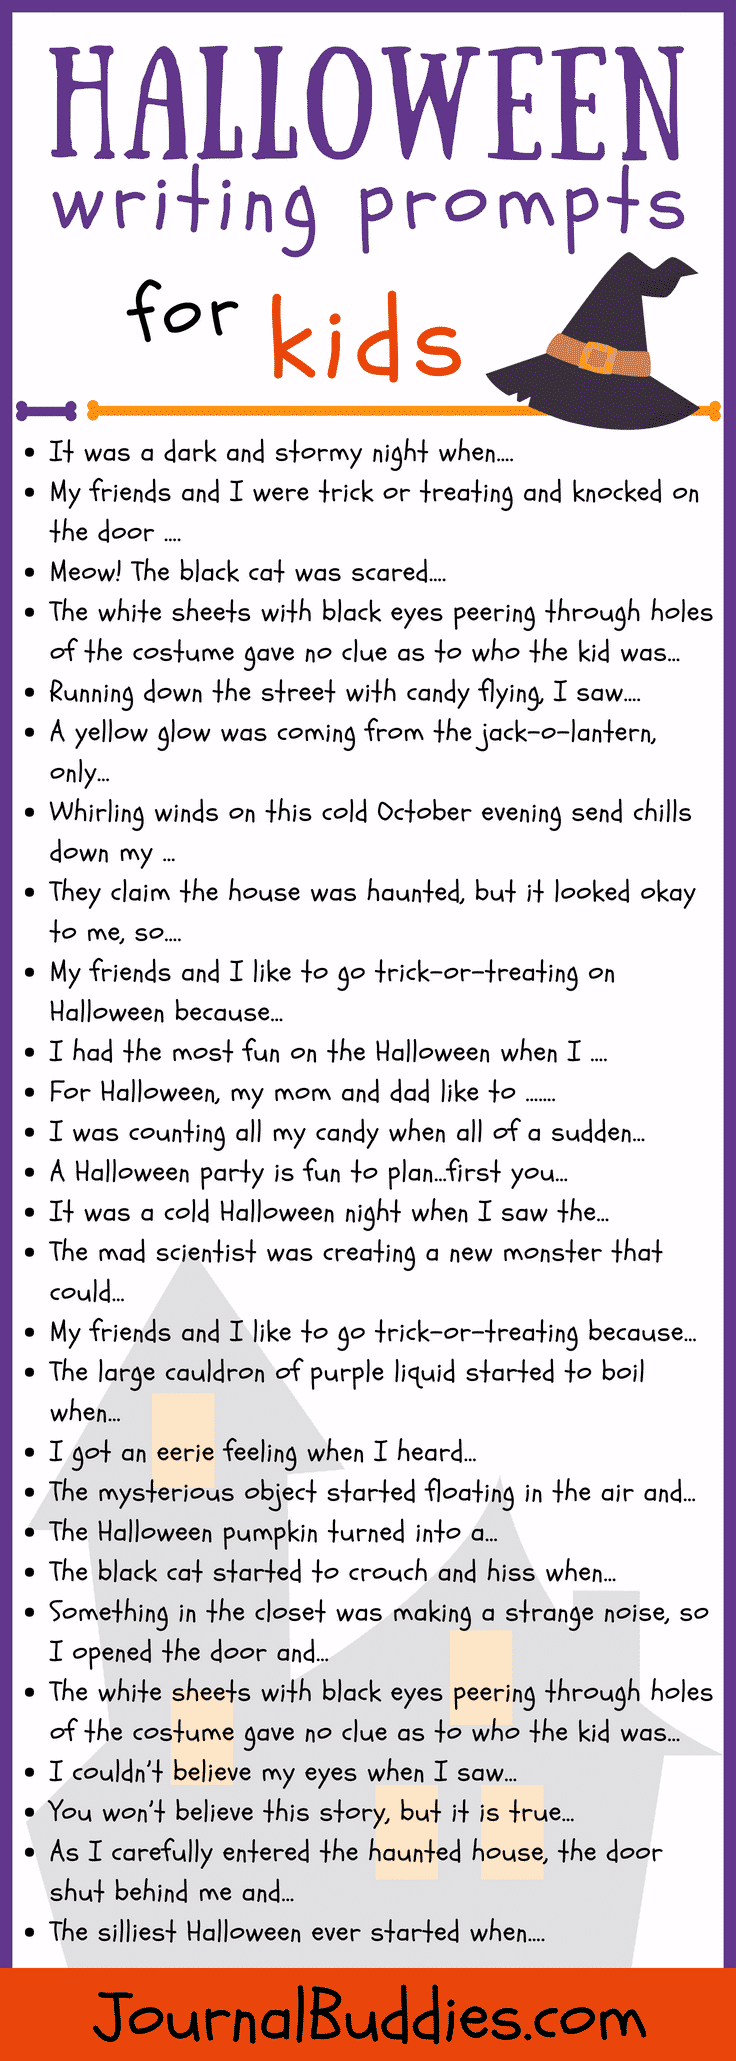 27 Halloween Writing Prompts for Kids • JournalBuddies com